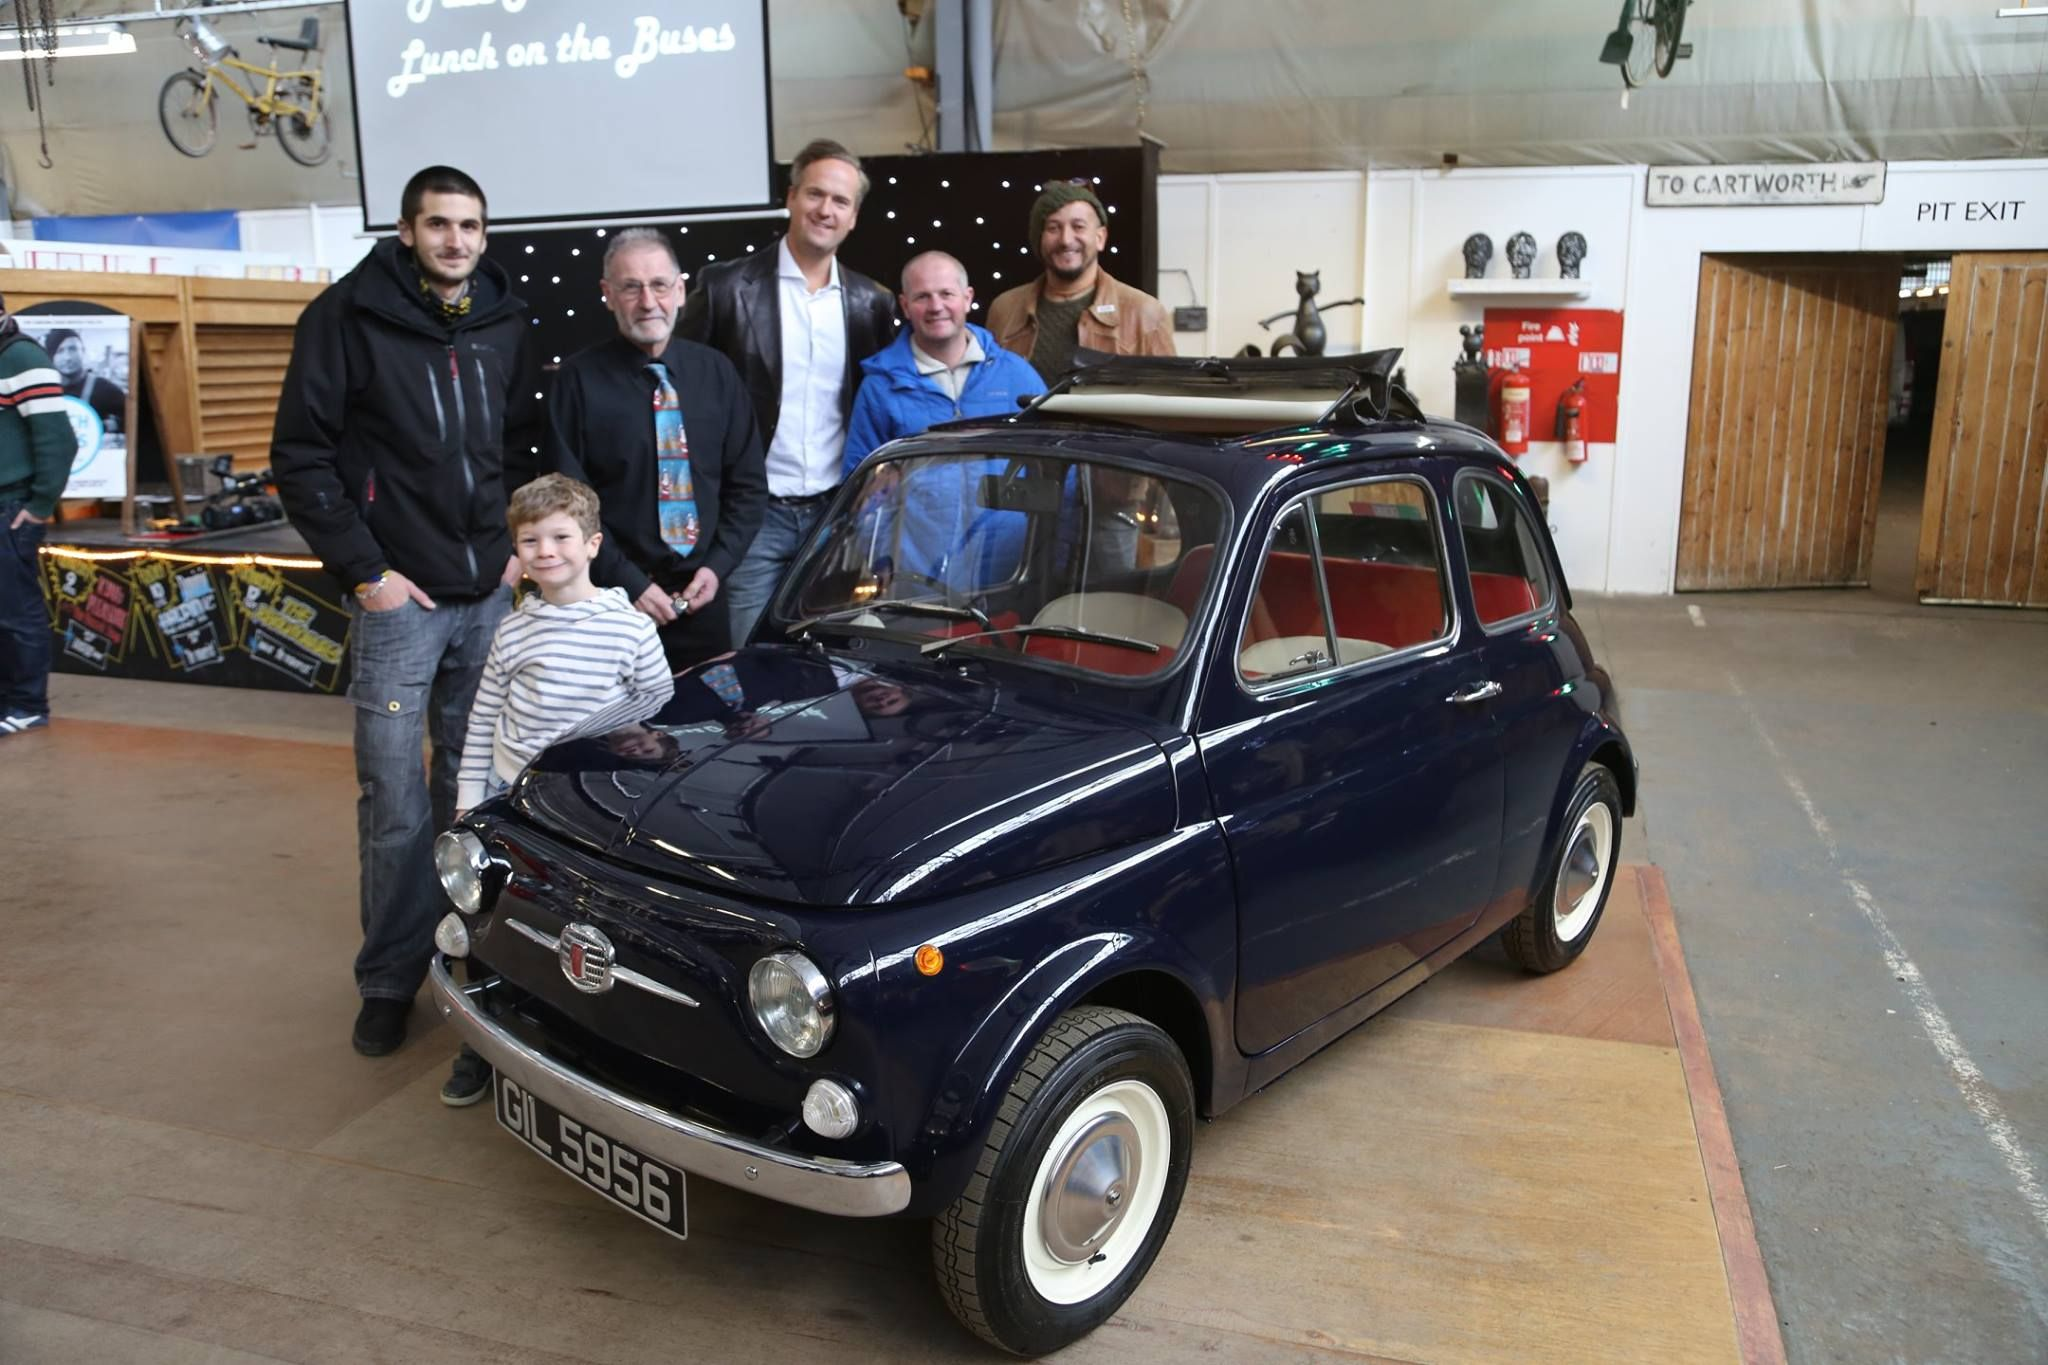 Car Sos Series 5 Episode 1 Tim And Fuzz Re An Iconic 1967 Fiat 500 Which Has Been Rusting Away In A Damp Garage To Its Former Glory For Owner